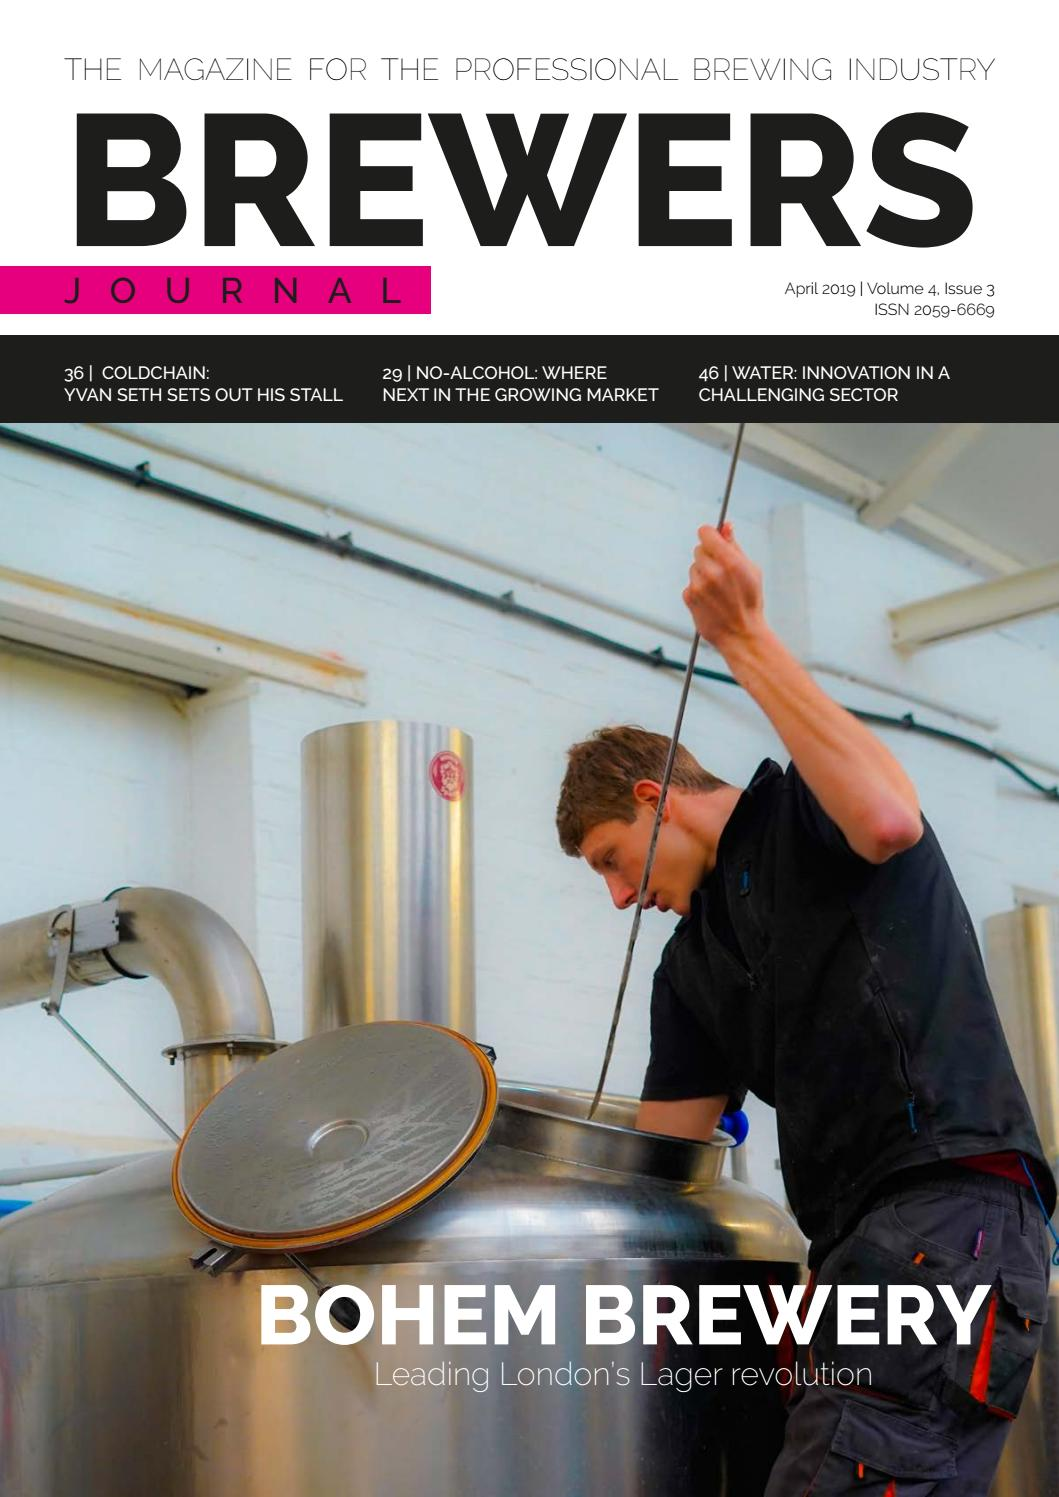 The Brewers Journal April 2019, iss3 vol 5 by Reby Media - issuu